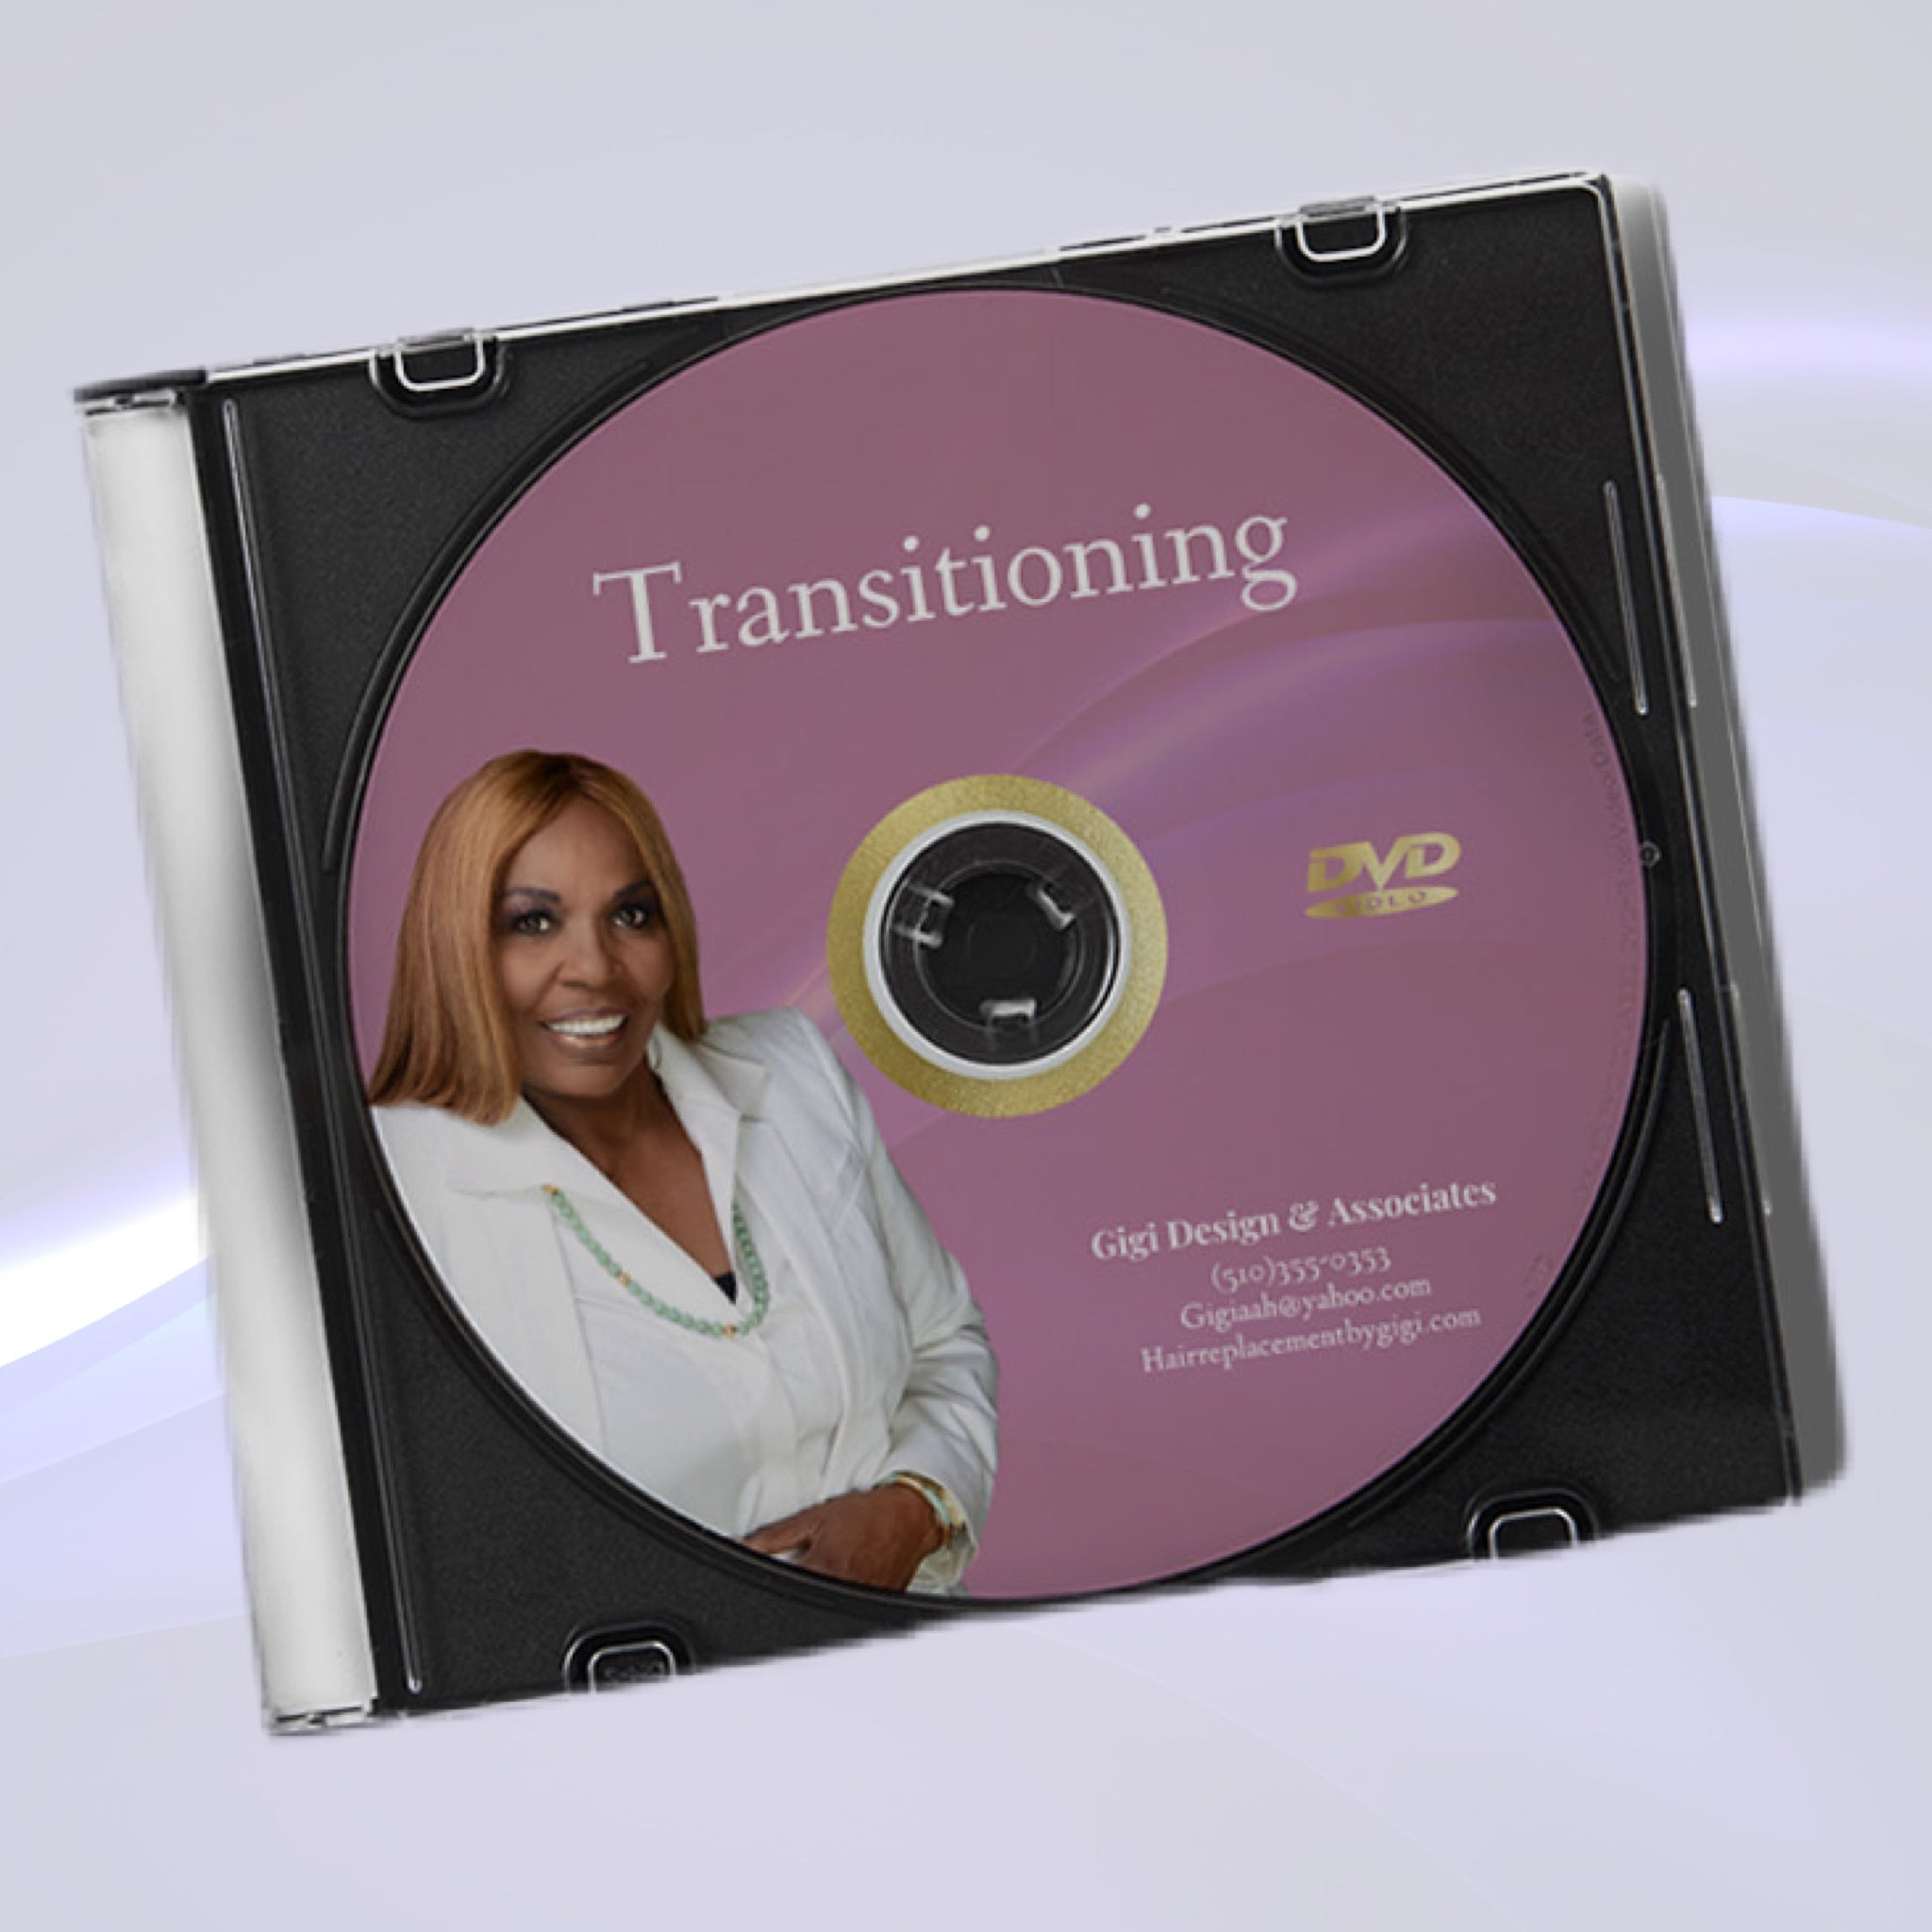 Transitioning From Hair Weaves To Hair Replacement (DVD)